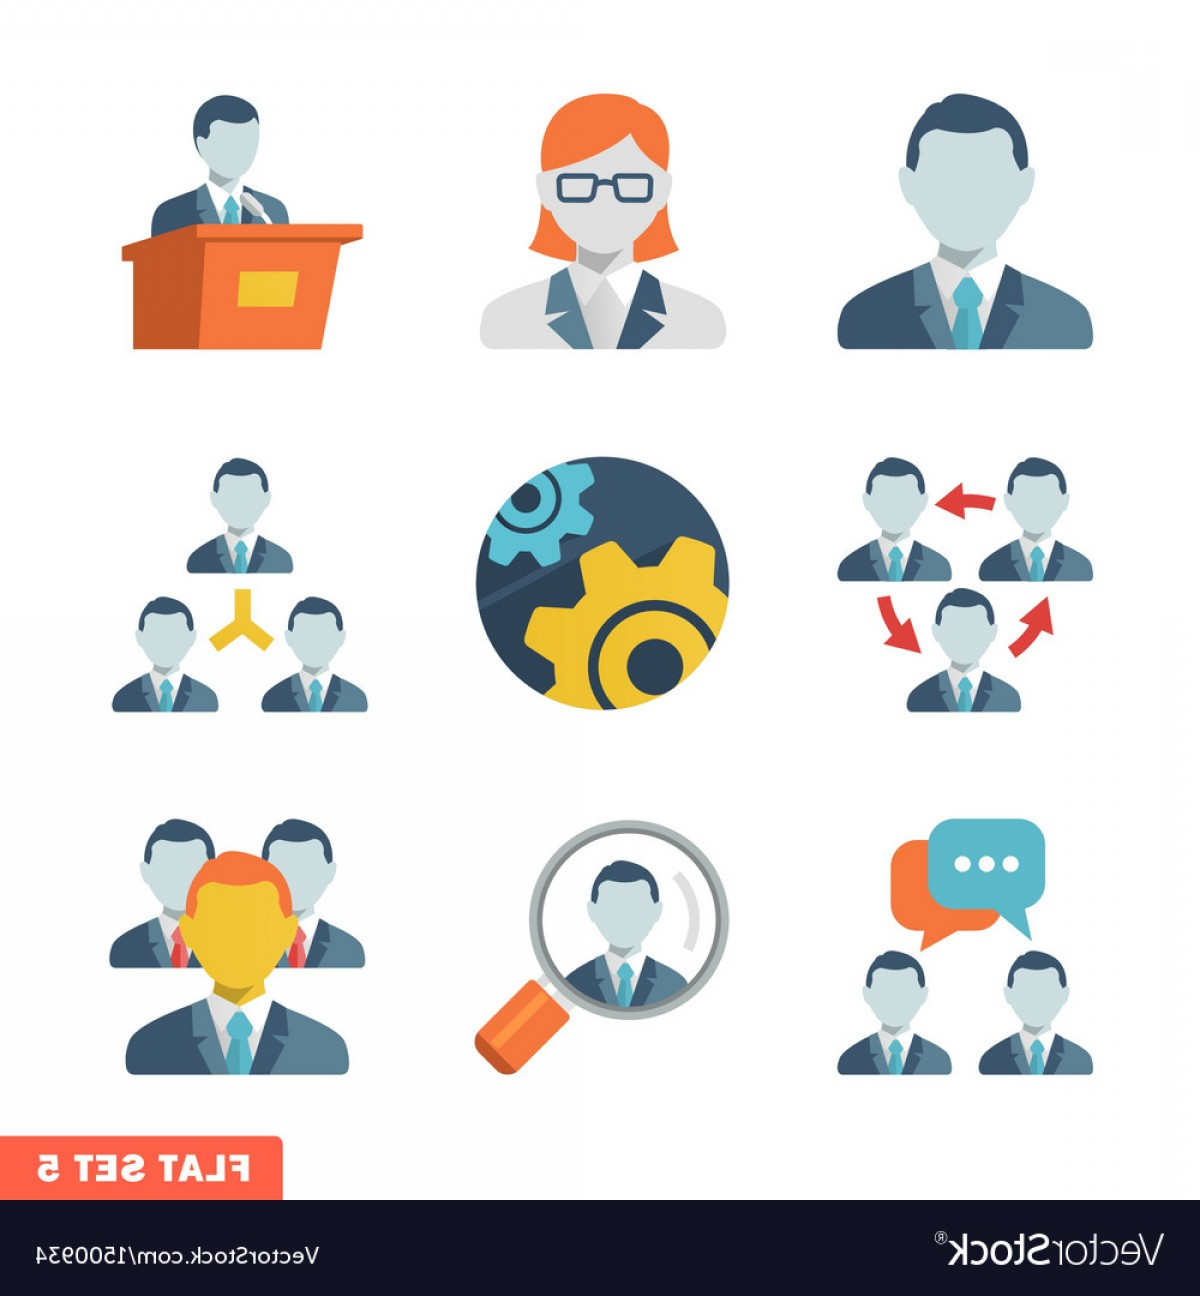 Free Vector Business People Icon: Business People Flat Icons Vector